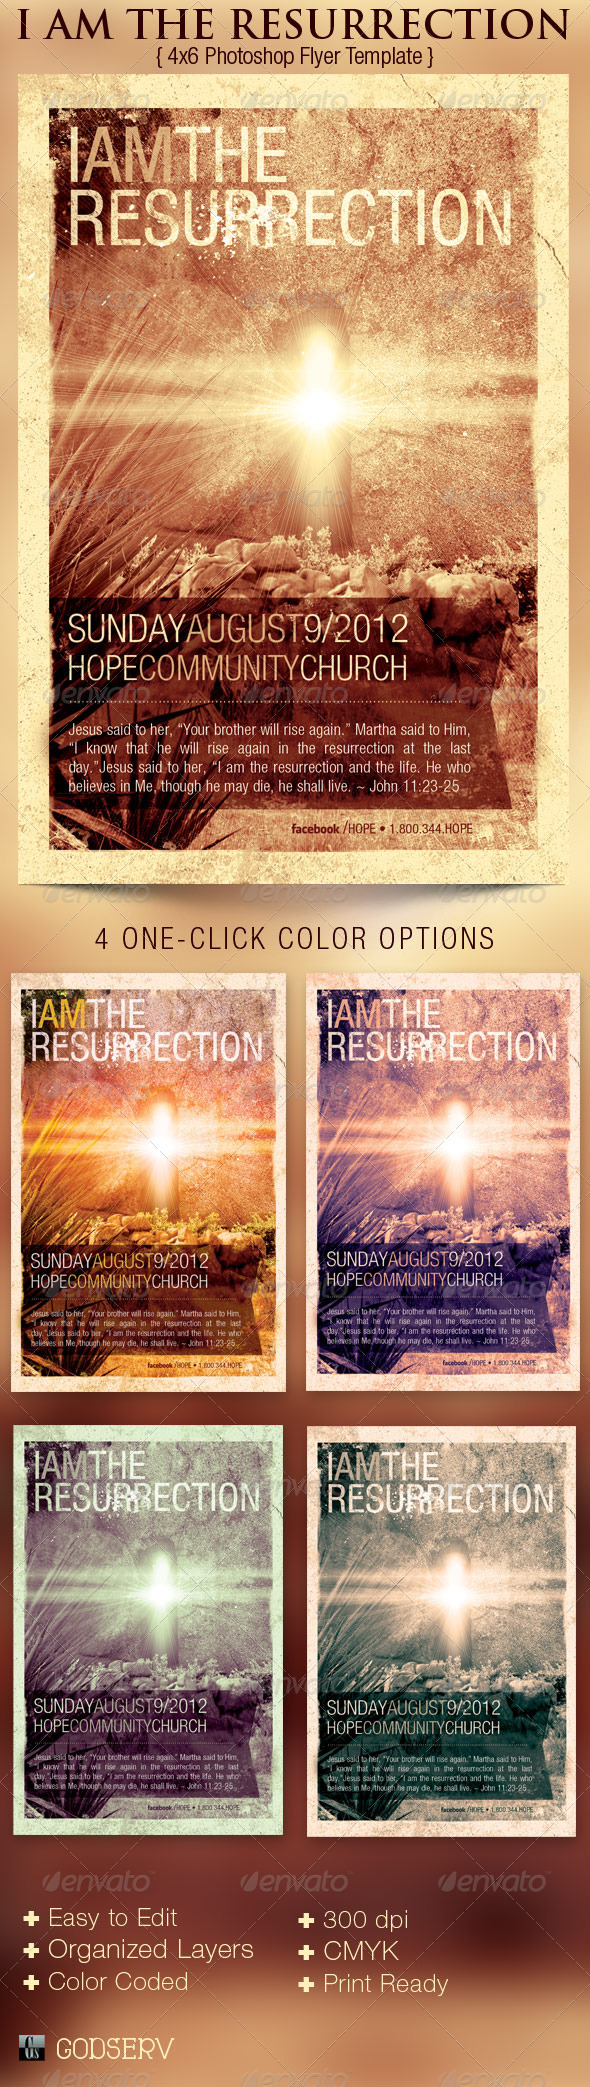 GraphicRiver I Am The Resurrection Church Flyer Template 2793084